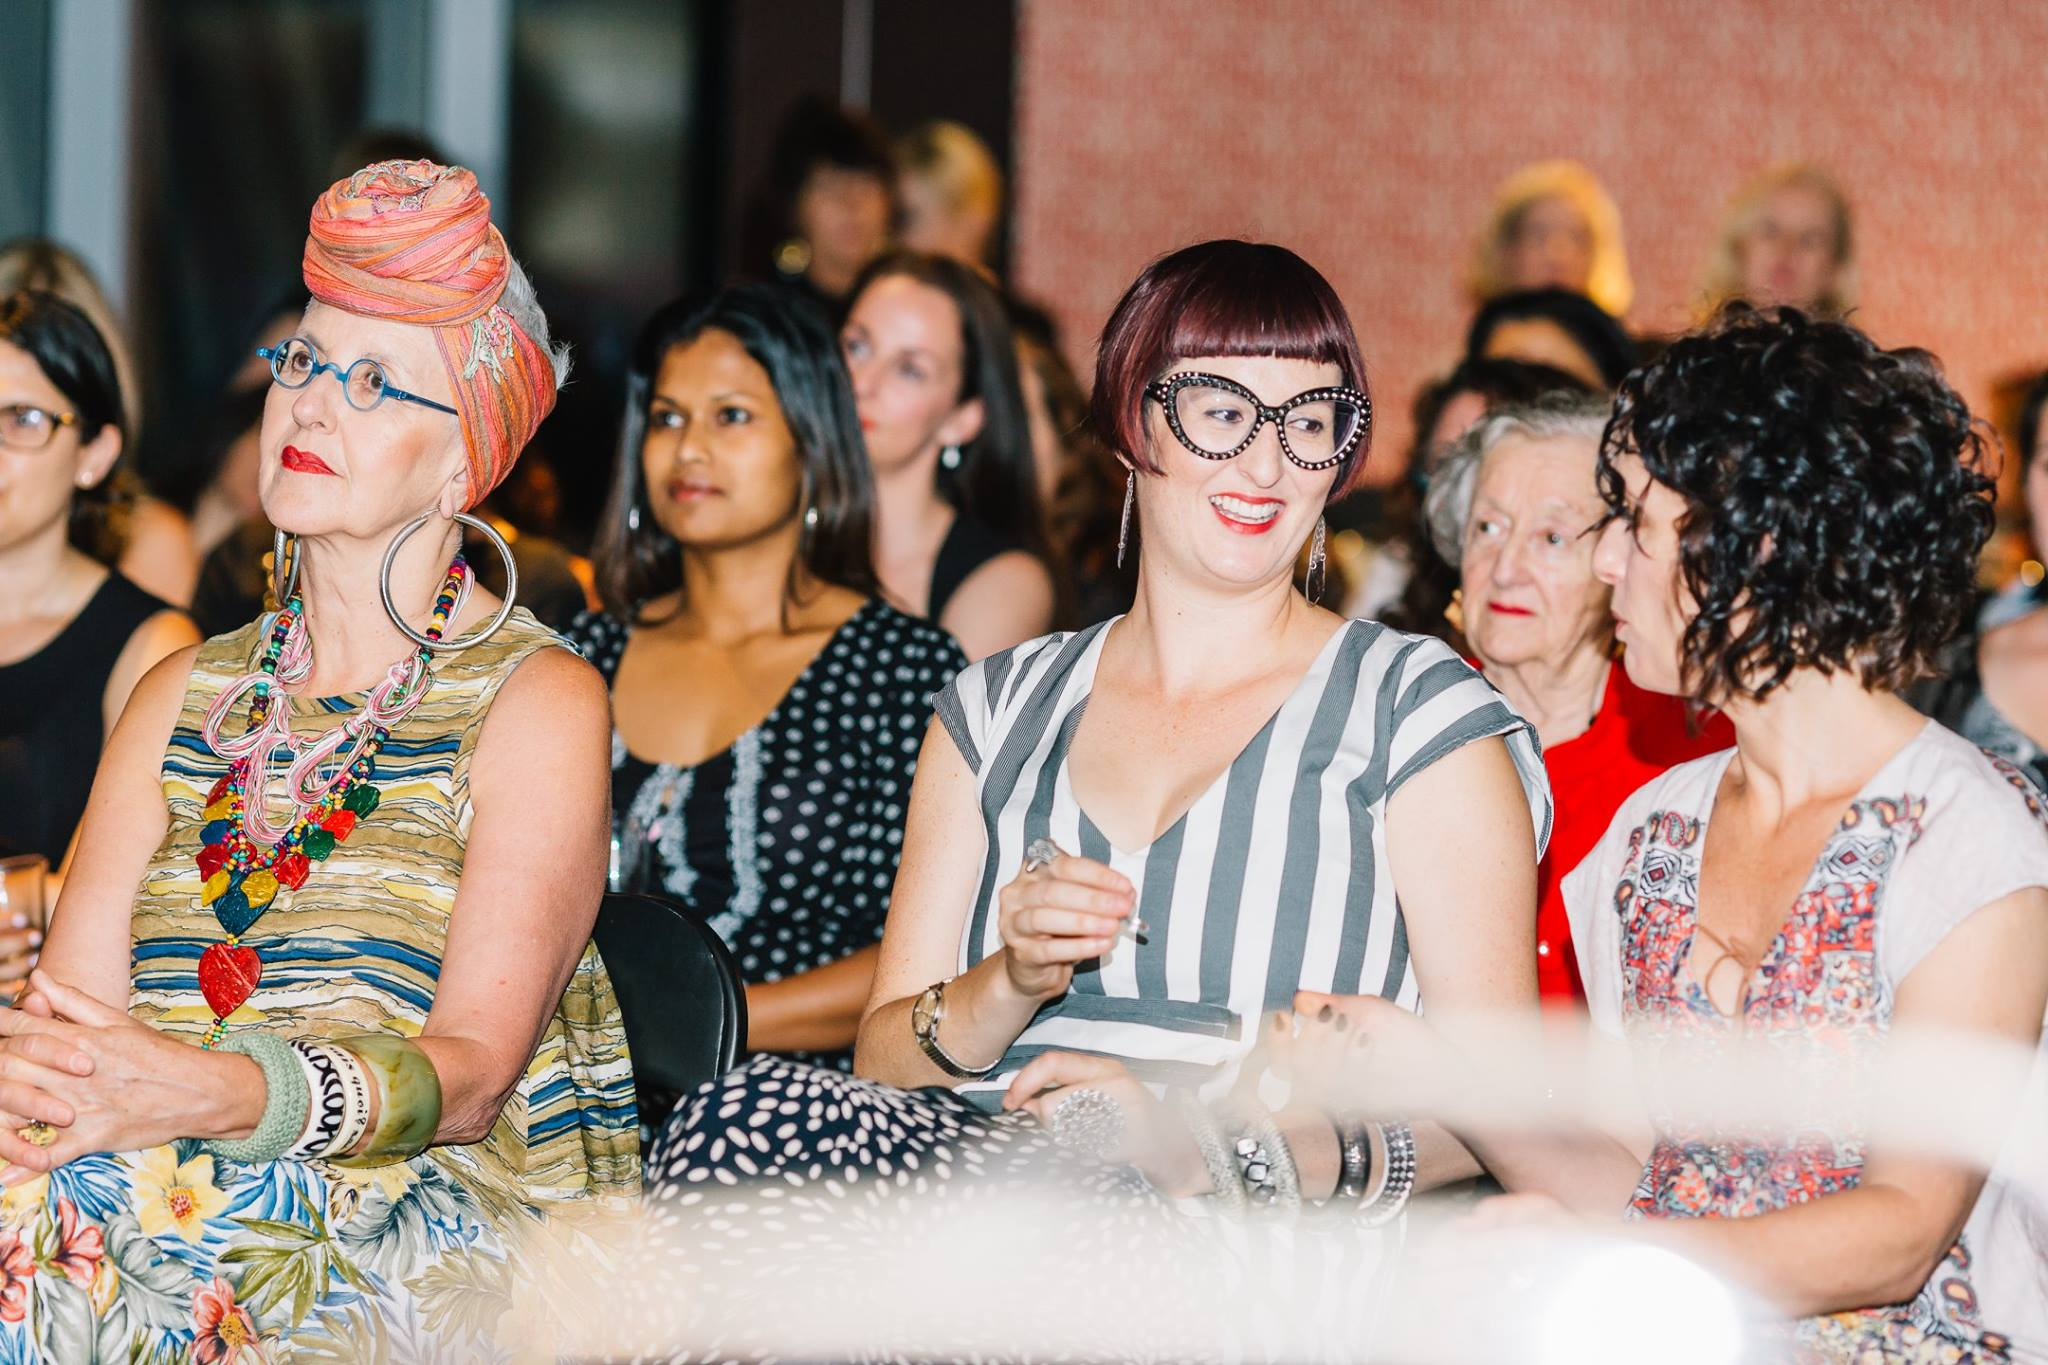 Some of the crowd waiting to hear the fabulous performer AniKiko get our Mama Creatives Christmas Bash started. — with Tutti Bennett, Cecily-Anna Bradley and Kerri Sackville.